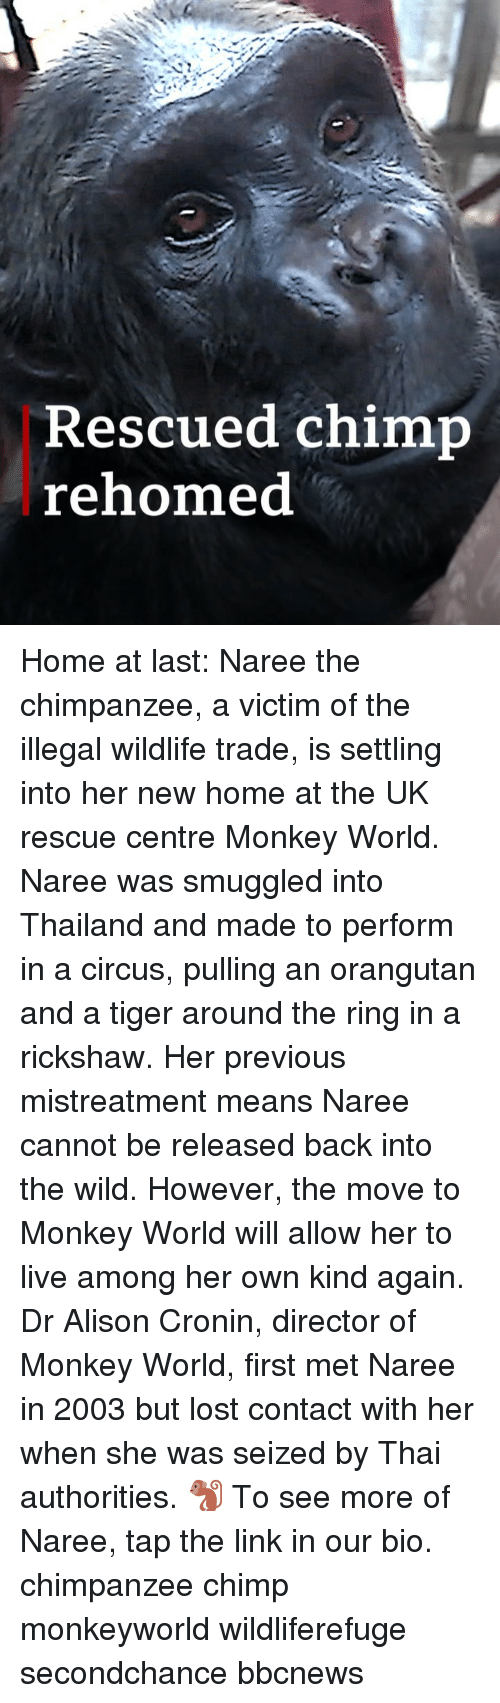 Chimp: Rescued chimp  rehomed Home at last: Naree the chimpanzee, a victim of the illegal wildlife trade, is settling into her new home at the UK rescue centre Monkey World. Naree was smuggled into Thailand and made to perform in a circus, pulling an orangutan and a tiger around the ring in a rickshaw. Her previous mistreatment means Naree cannot be released back into the wild. However, the move to Monkey World will allow her to live among her own kind again. Dr Alison Cronin, director of Monkey World, first met Naree in 2003 but lost contact with her when she was seized by Thai authorities. 🐒 To see more of Naree, tap the link in our bio. chimpanzee chimp monkeyworld wildliferefuge secondchance bbcnews